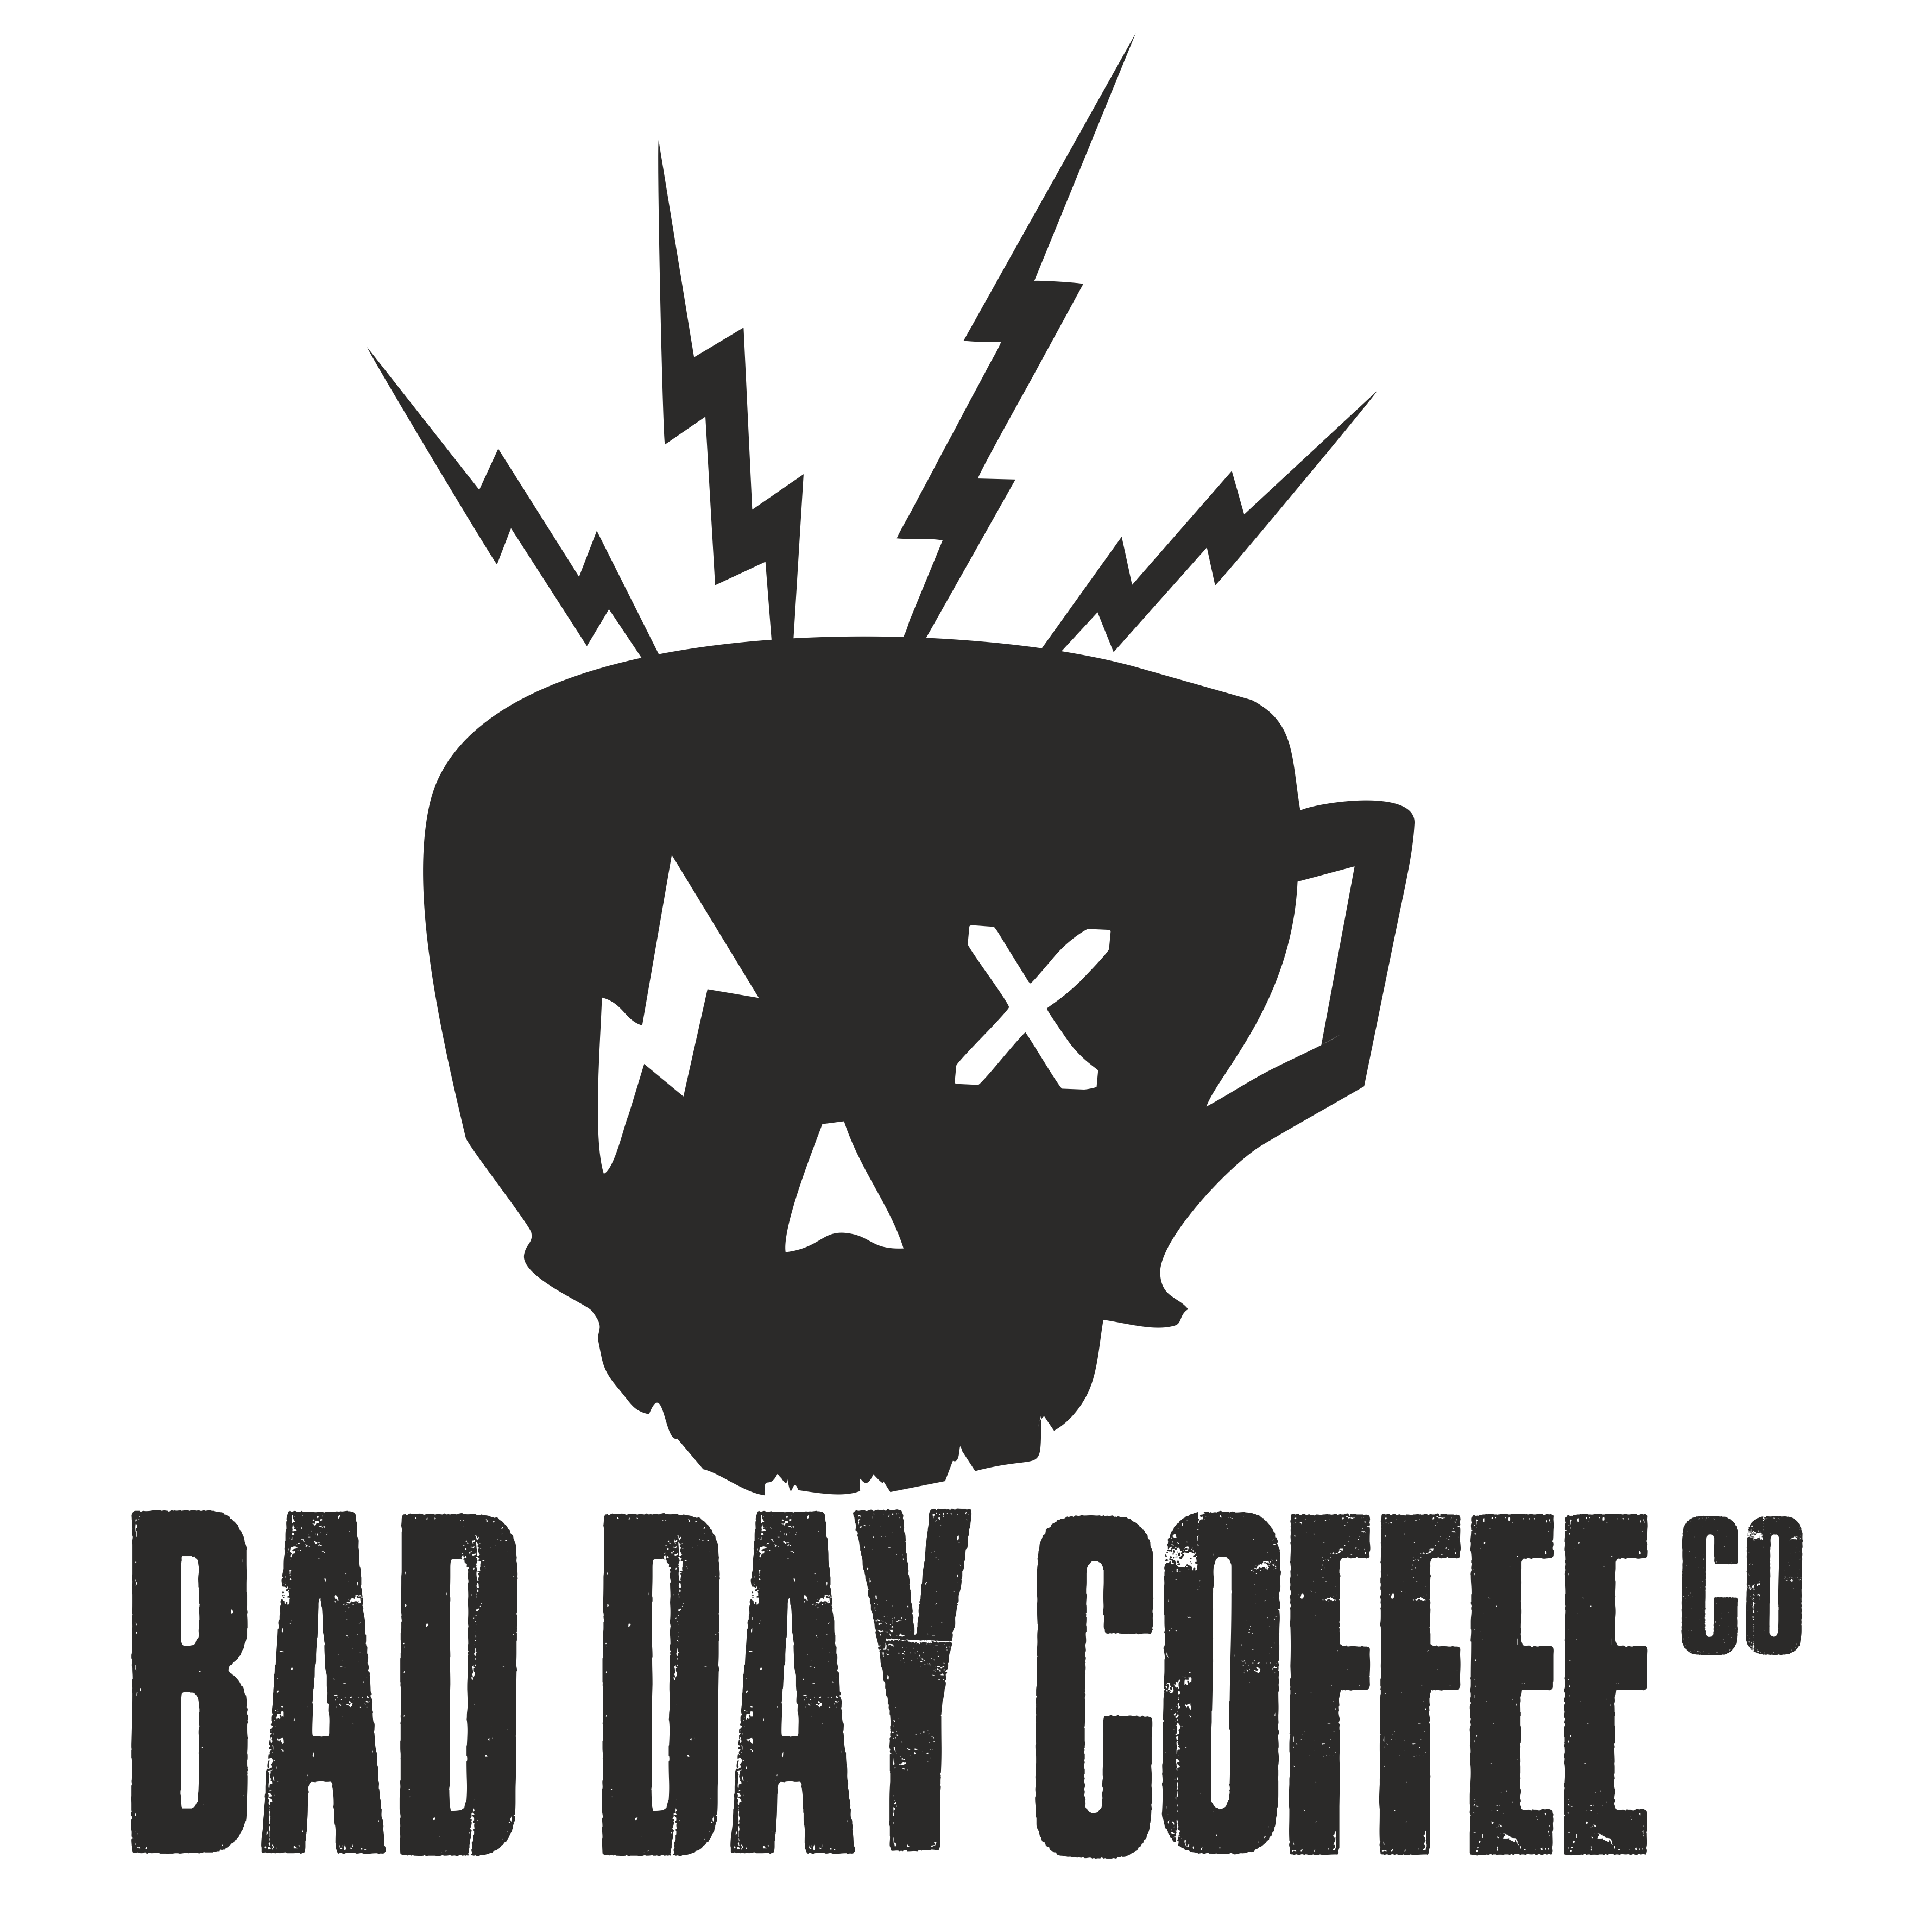 BAD DAY COFFEE Co.